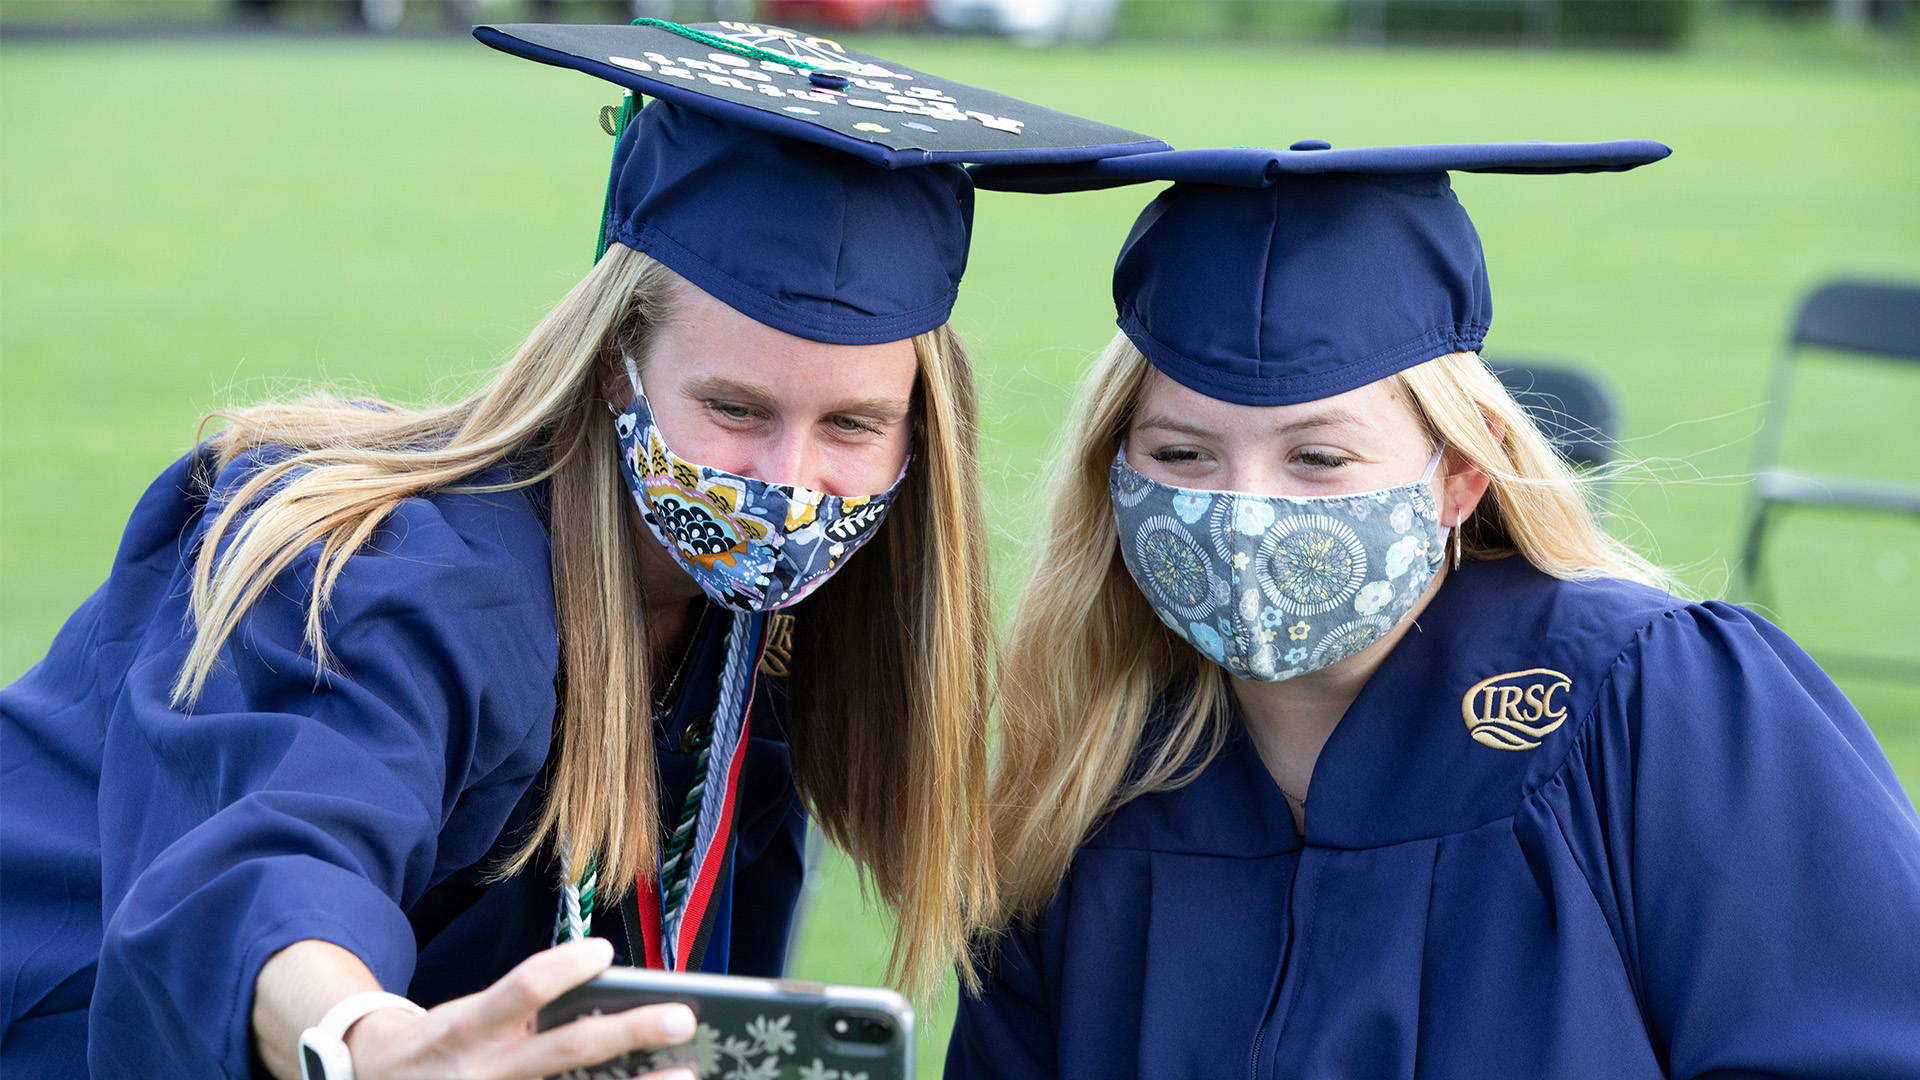 Students Taking Selfie at Commencement